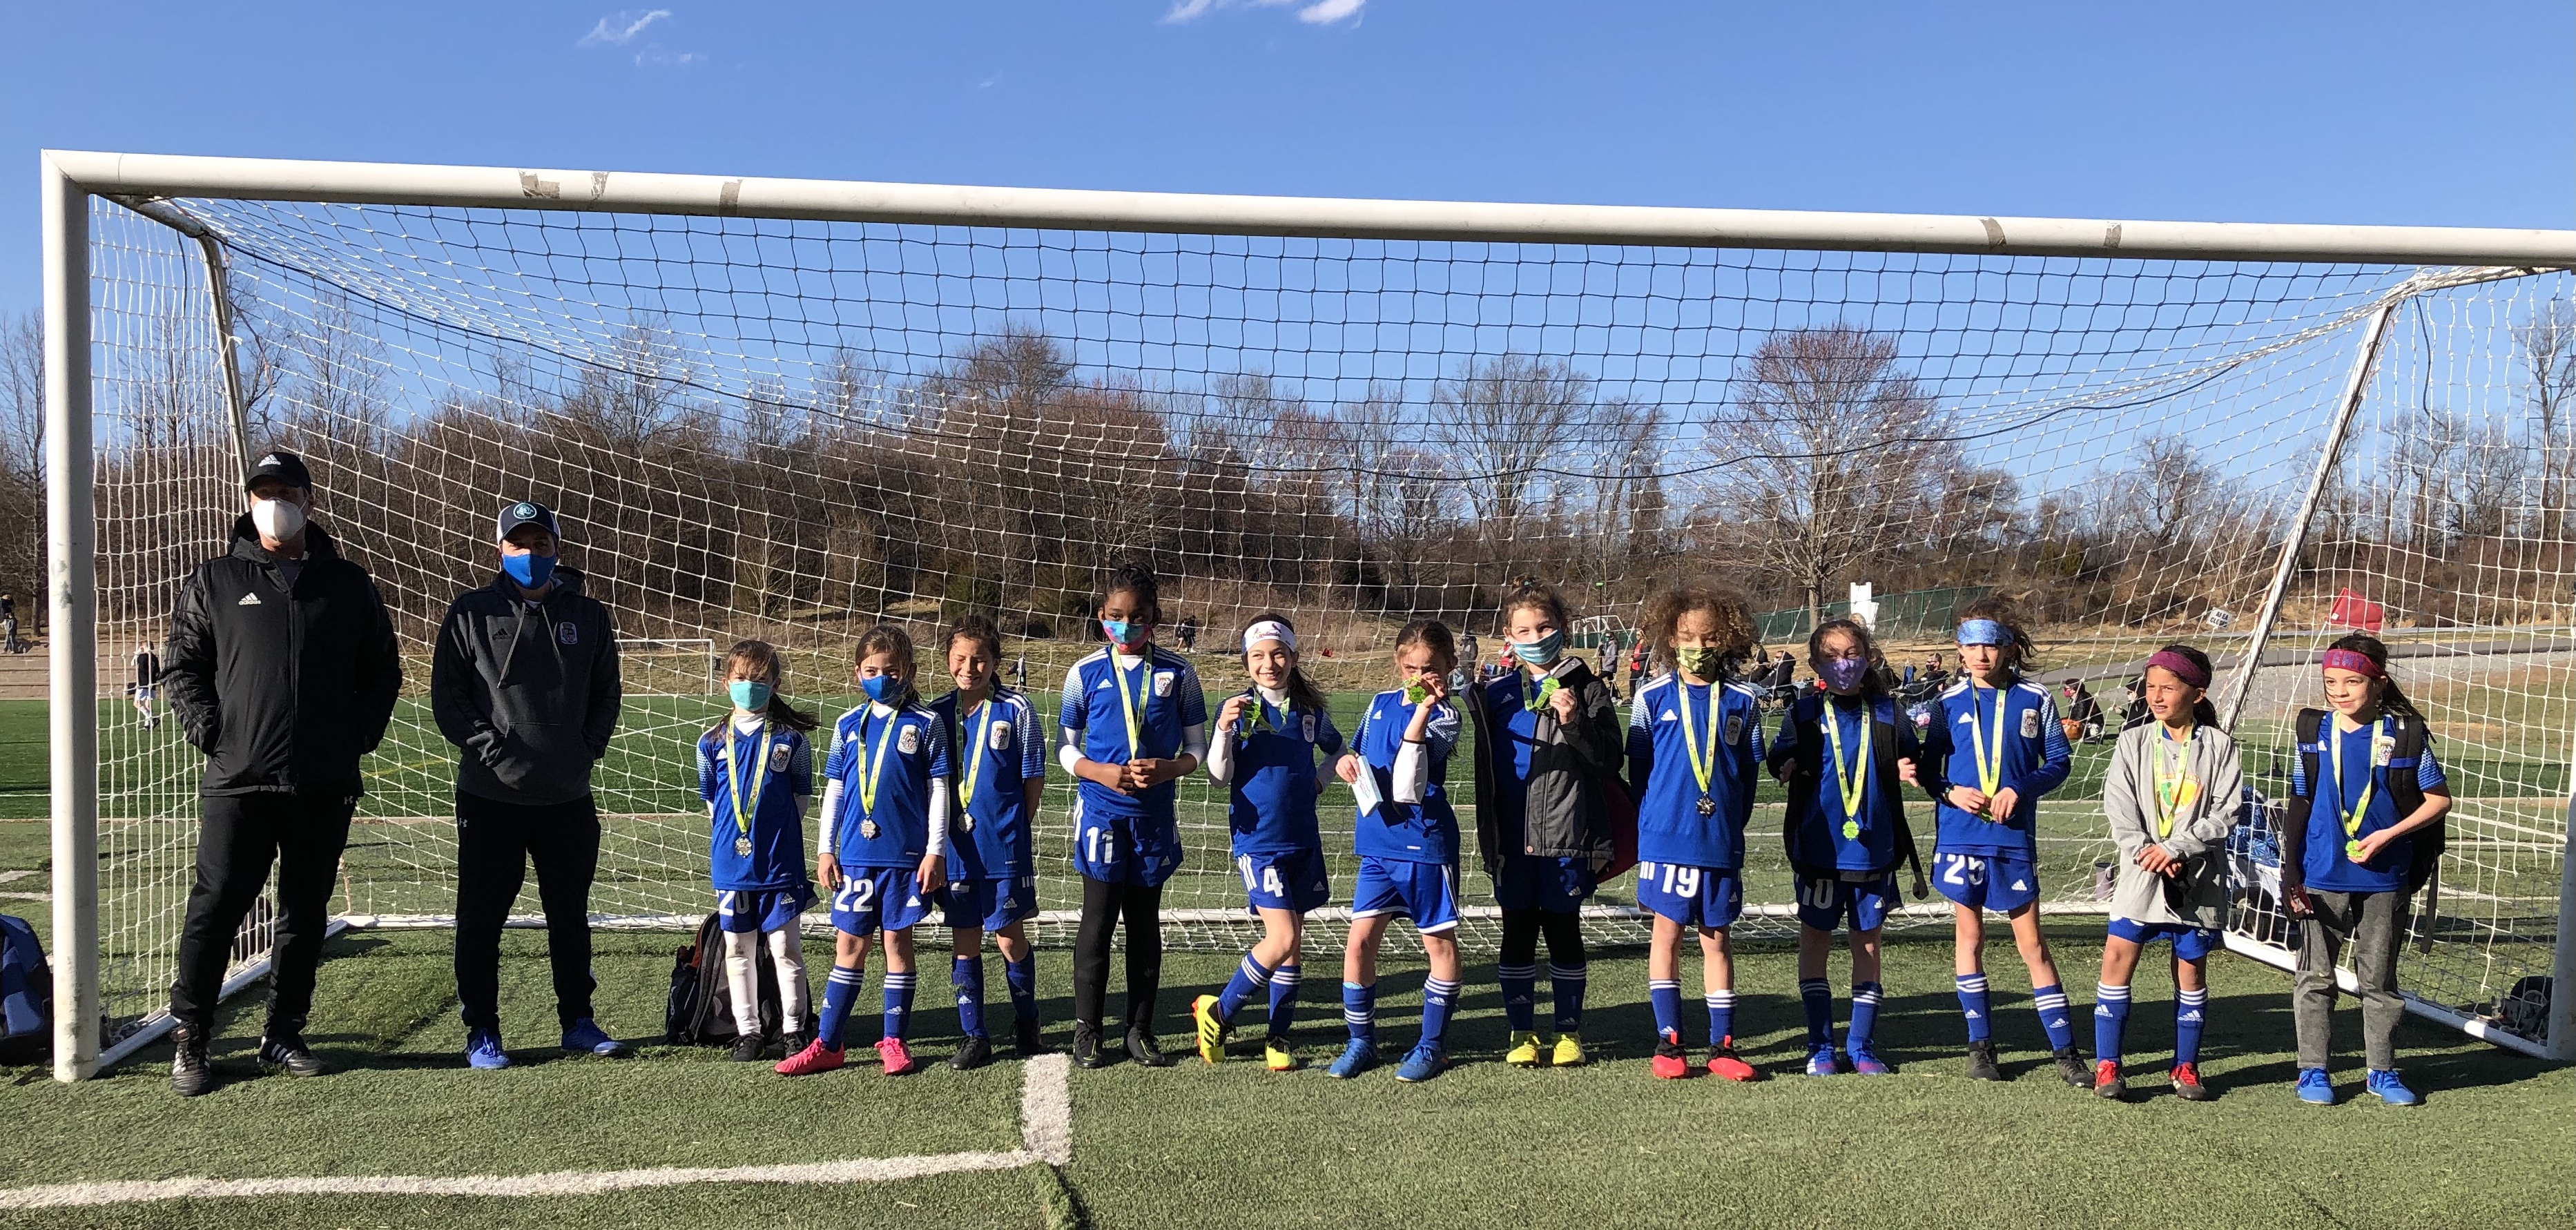 ASA Royal Blues Reach Finals in Amanda Post Soccer Tournament